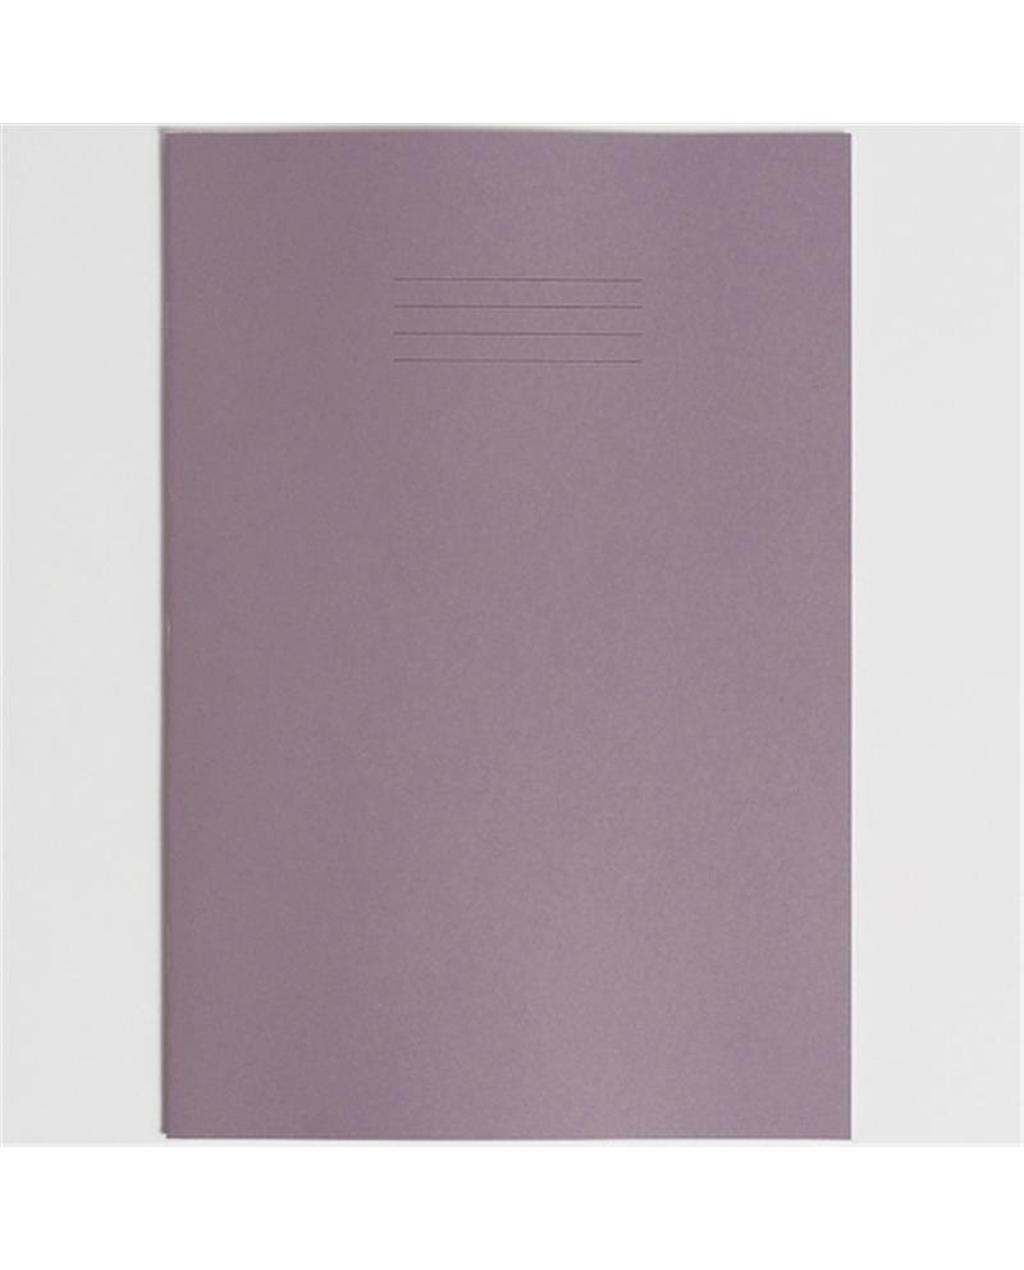 Exercise Book A4+ (330 x 250mm) Purple Cover Plain - No Ruling 80 Pages